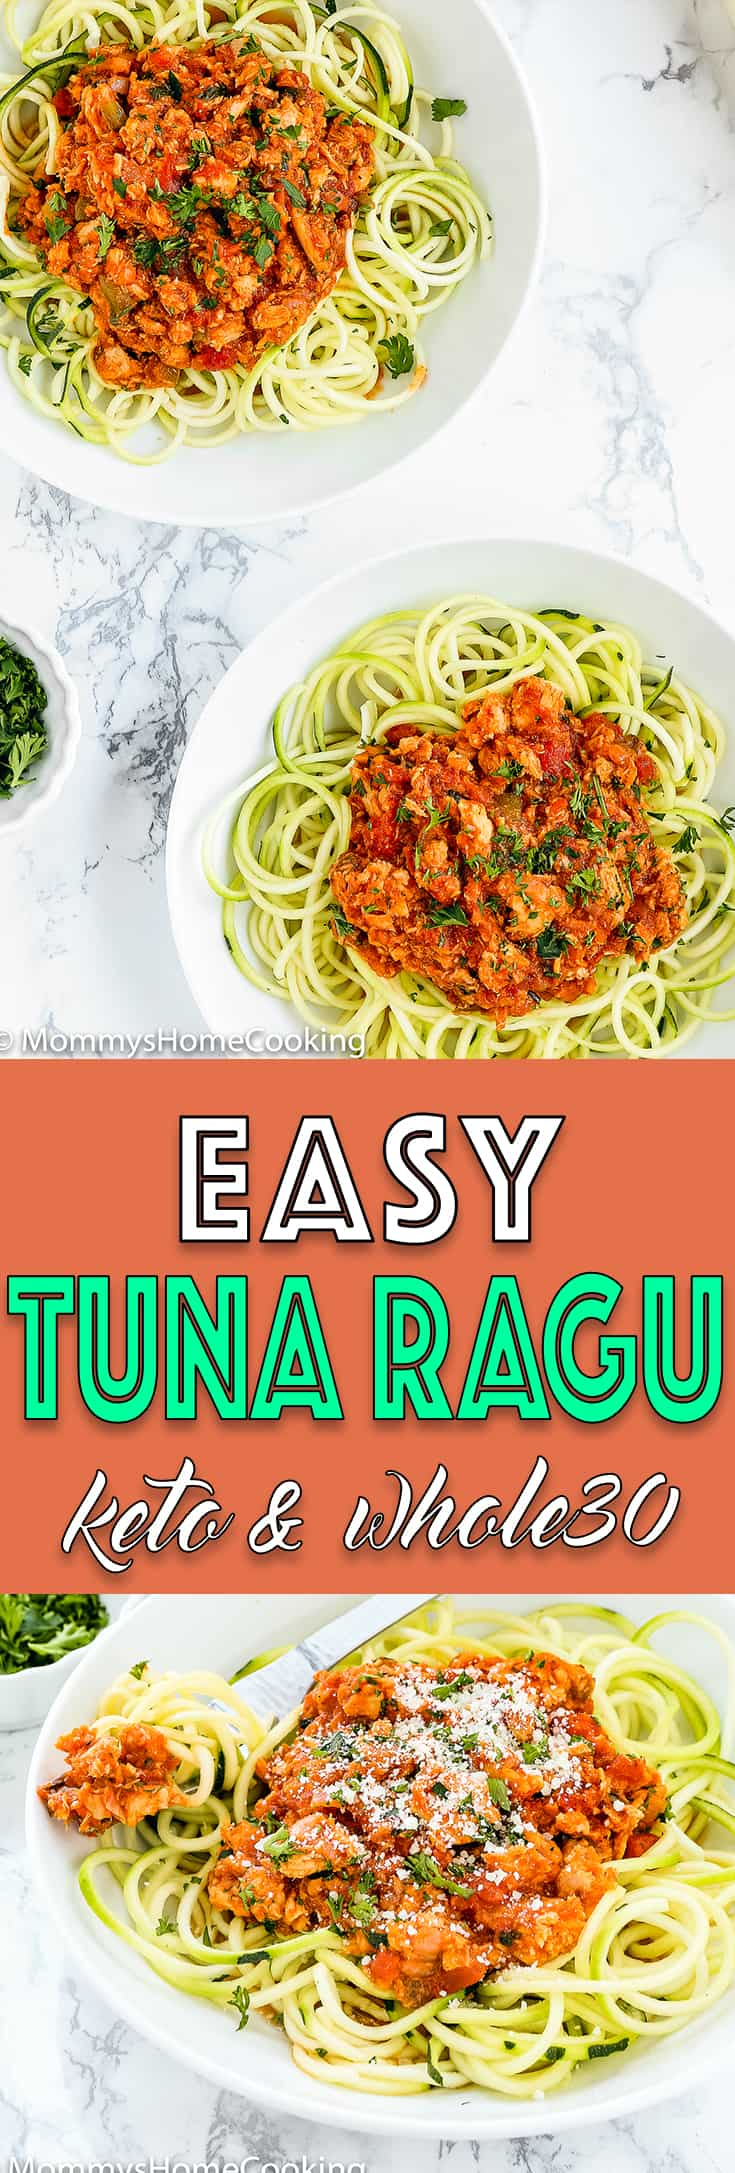 This Easy Tuna Ragu recipe is delicious, light and healthy yet full of robust flavors. It's ridiculously easy to make and everything is cooked in one pan in less than 30 minutes. [Keto Friendly] [Whole 30 Friendly] http://mommyshomecooking.com